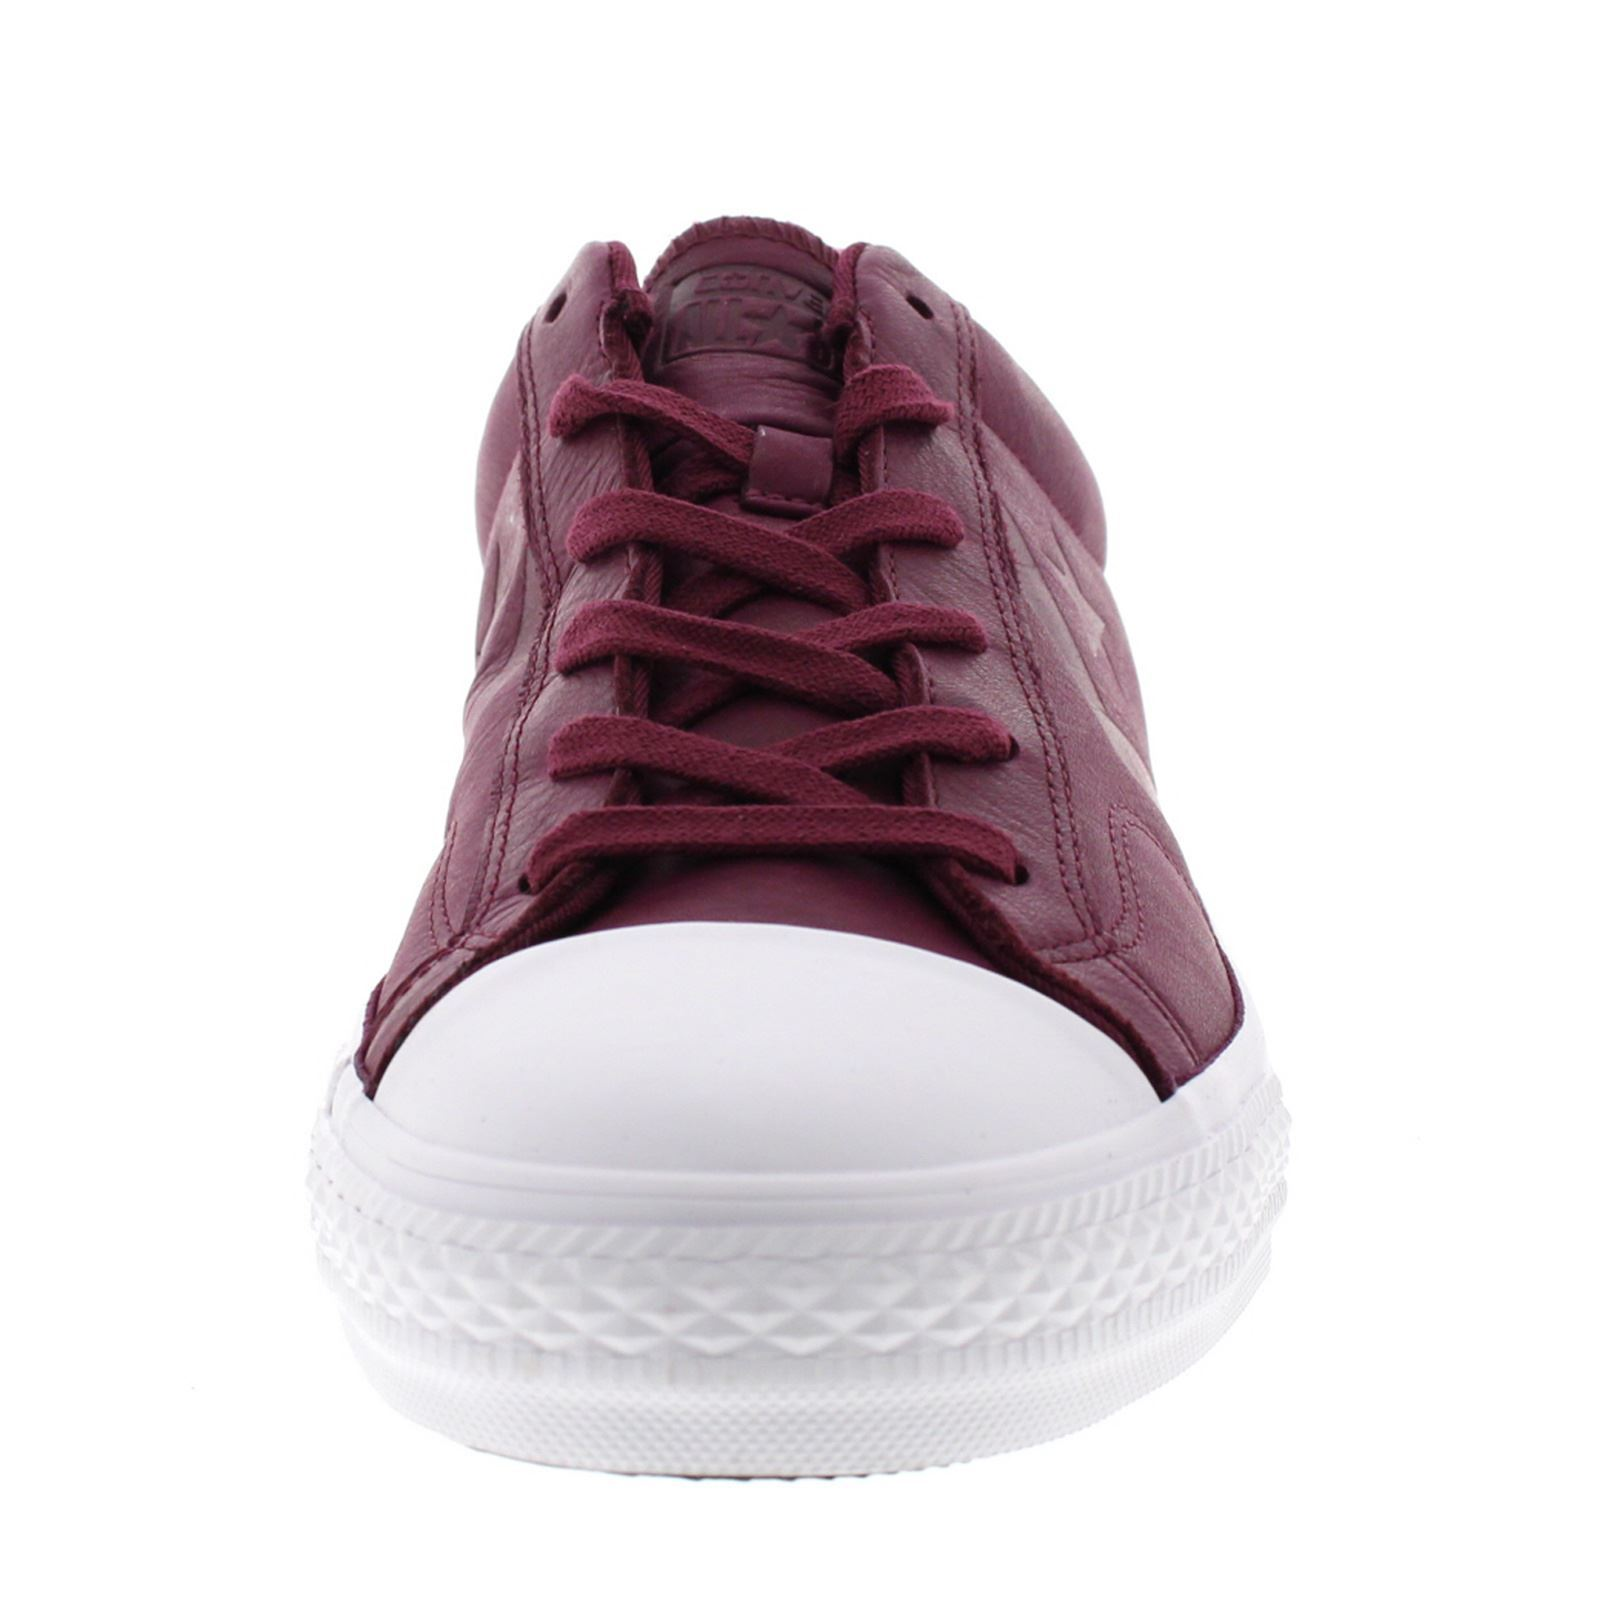 BordeauxBrandalley Player Player Star Converse Converse Star Star Player Baskets BordeauxBrandalley Baskets Converse srtxBhQdC